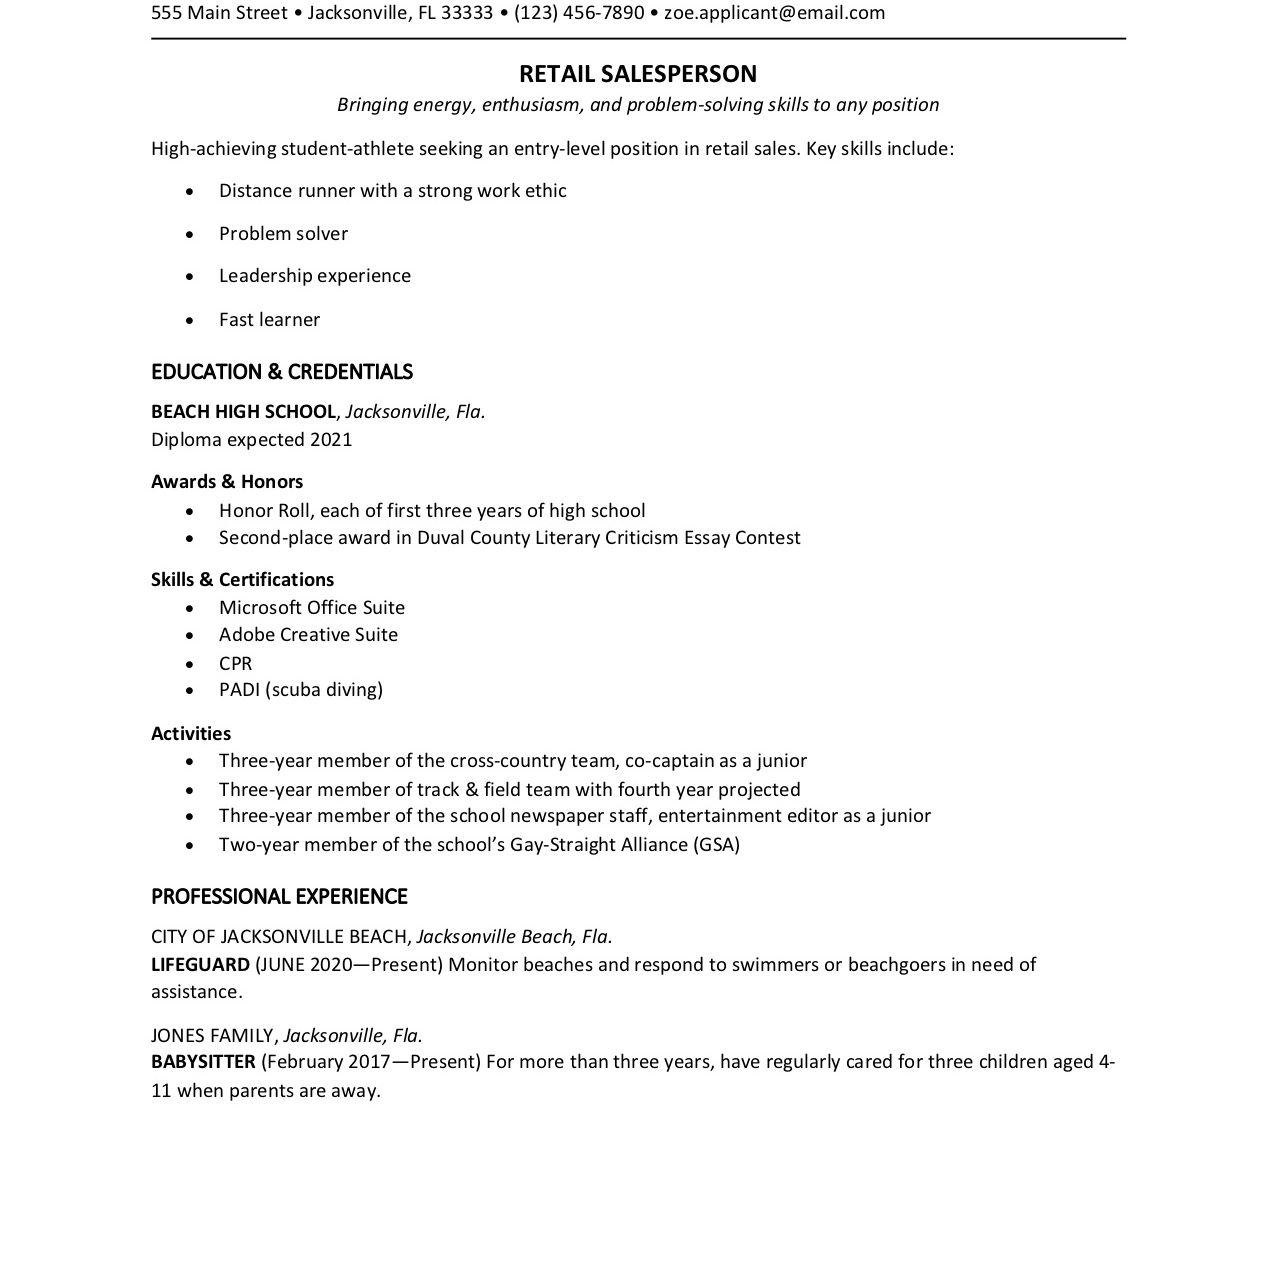 high school student resume template examples first job trainer skills for keywords Resume High School Student Resume Examples First Job